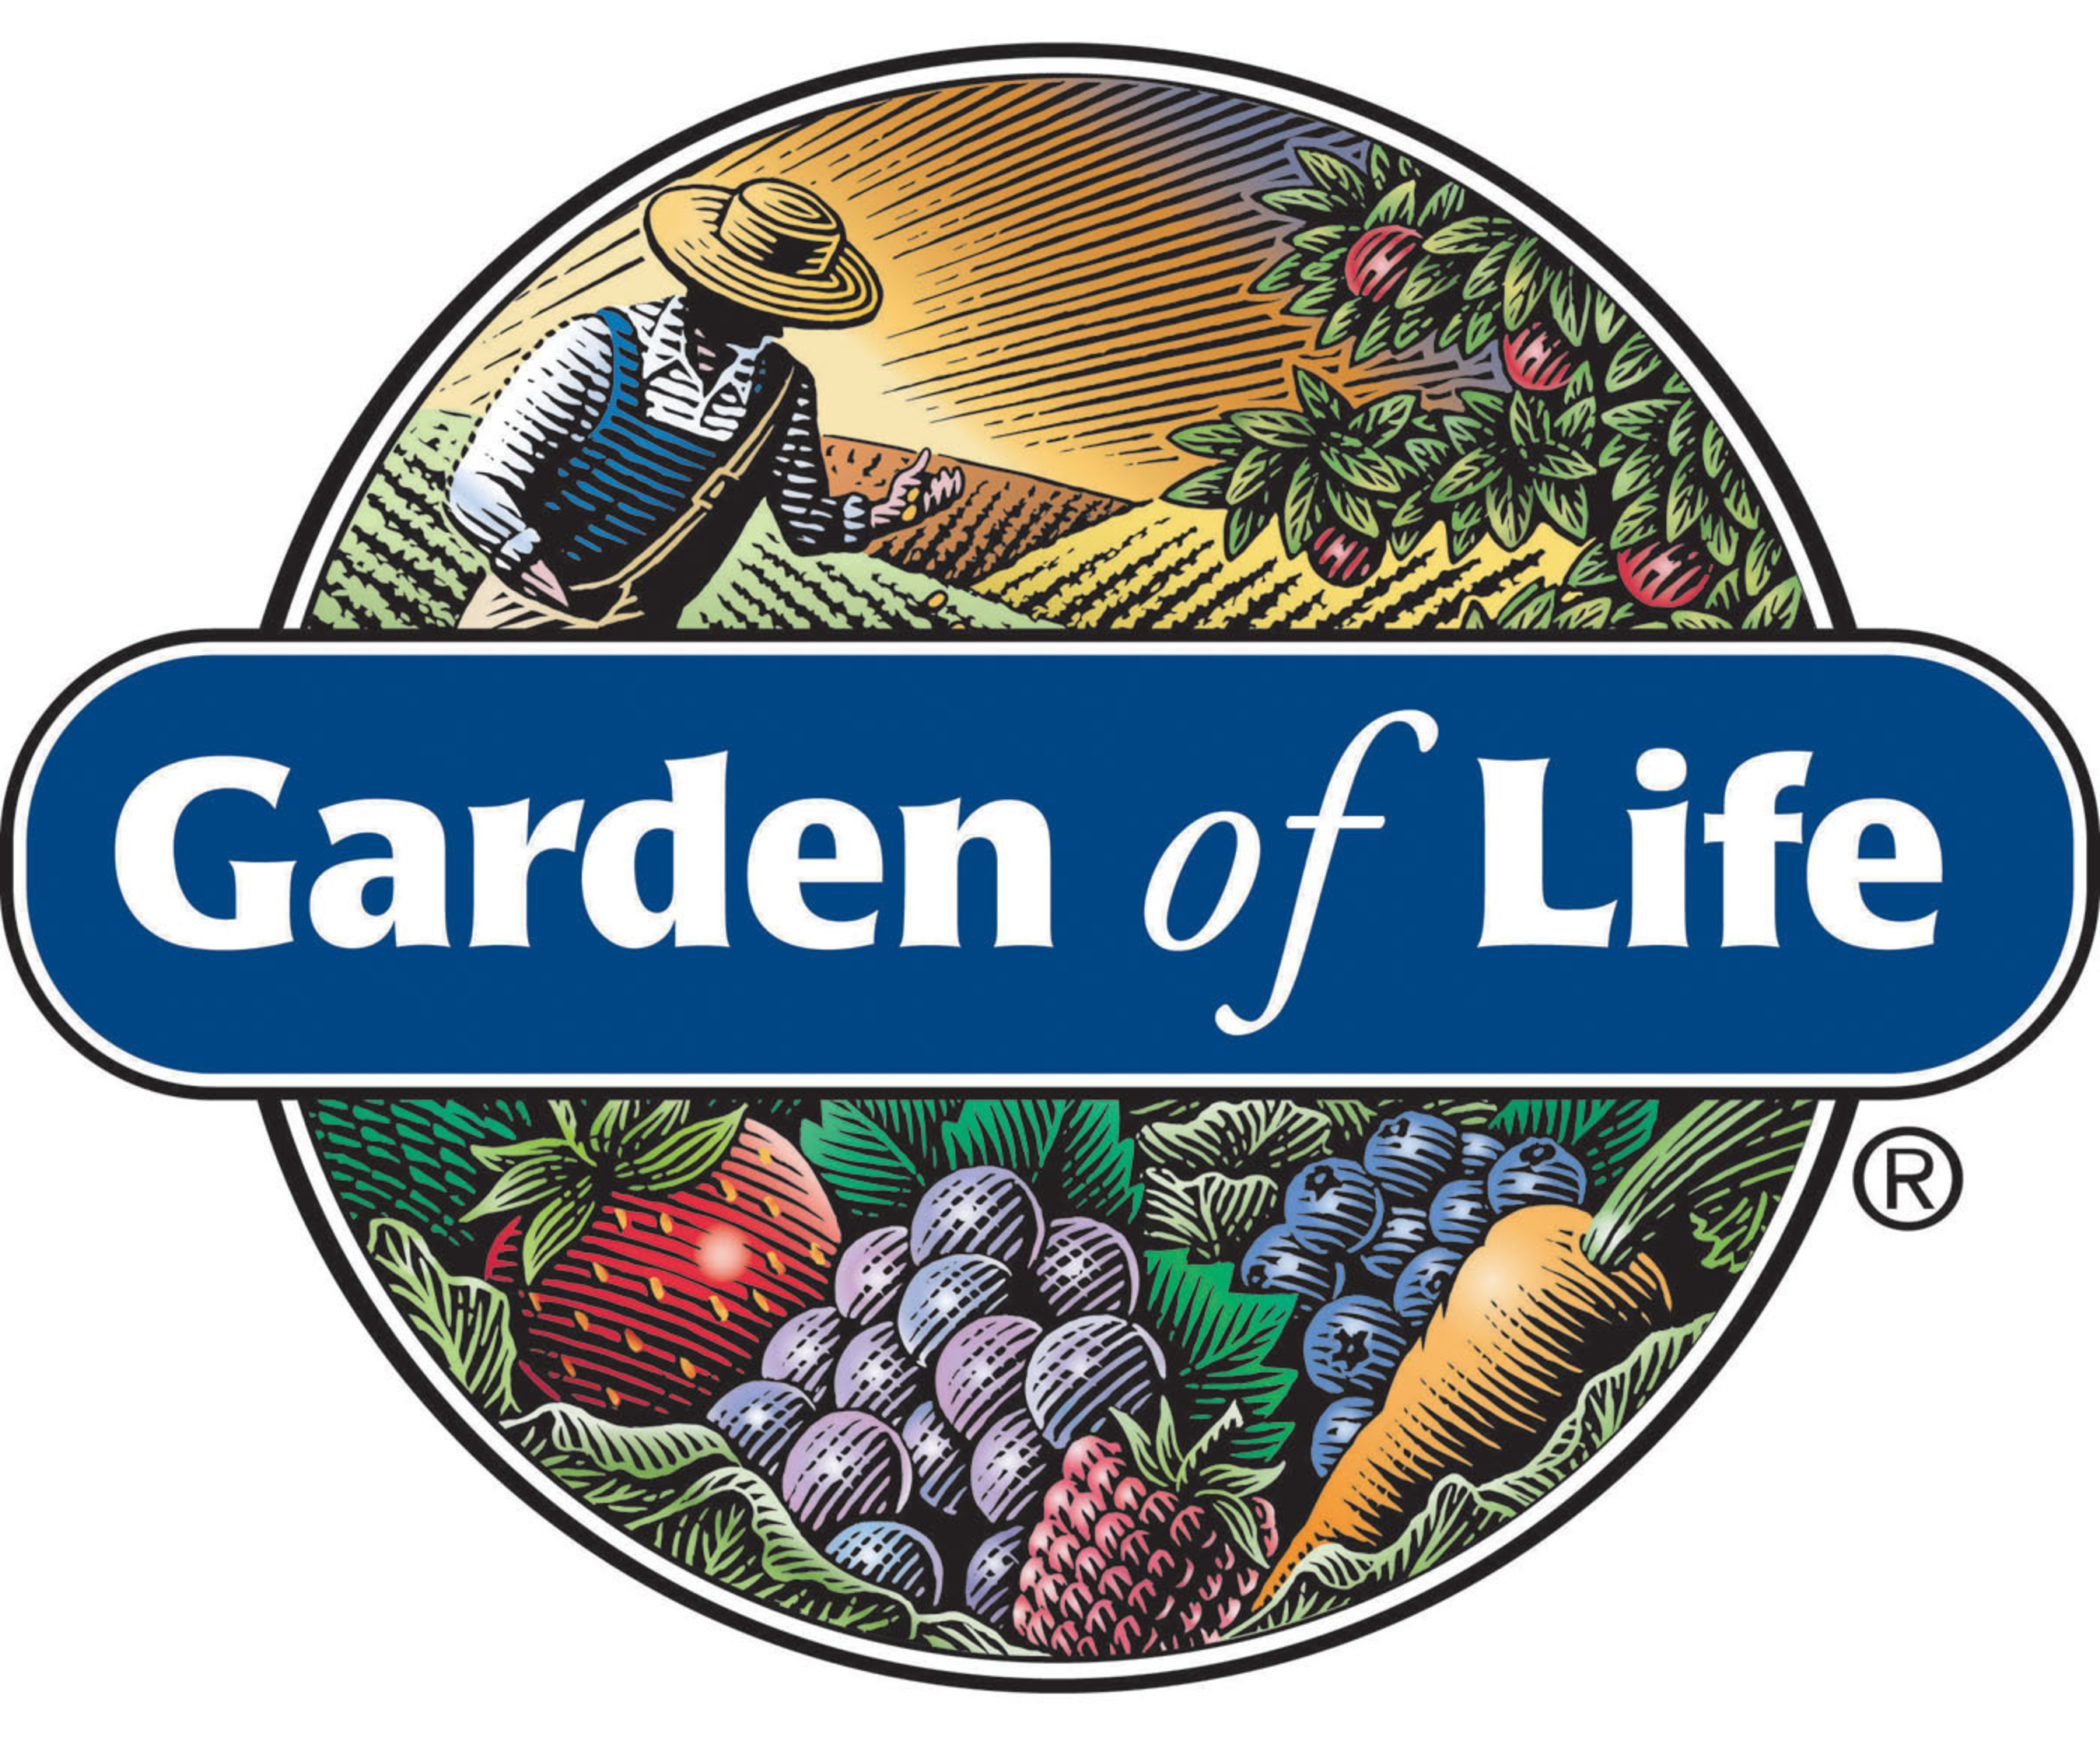 garden of life sets a new standard for vitamins - Garden Of Life Vitamins